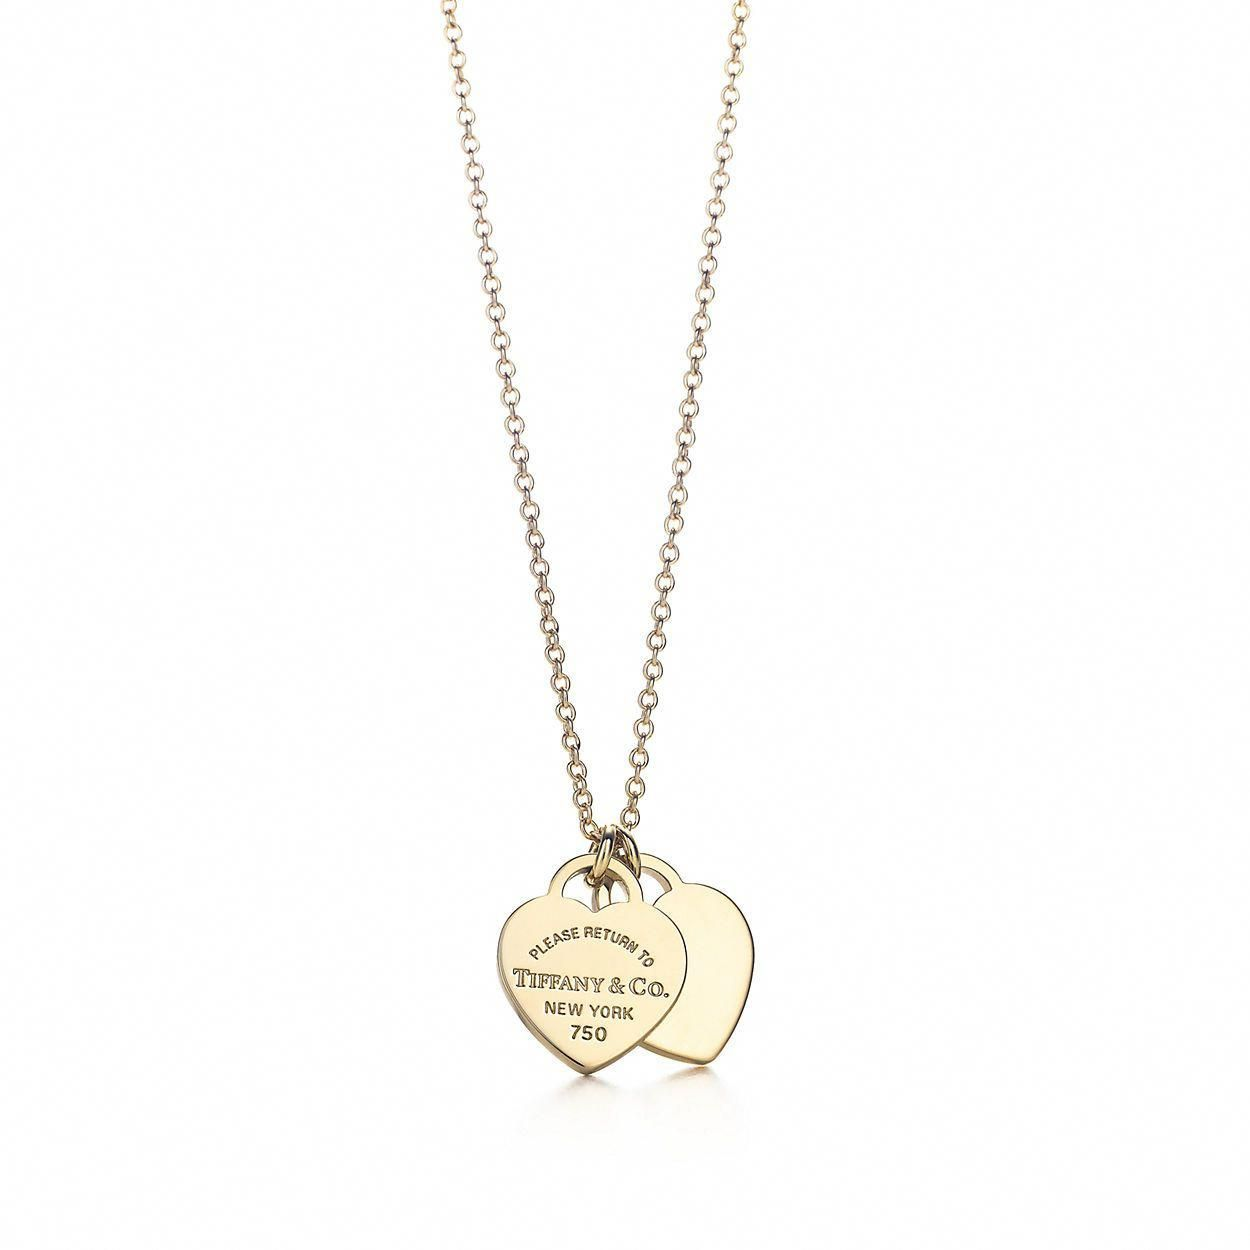 Tiffany 60% OFF! Return to Tiffany® mini double heart tag pendant in 18k gold.   Tiffany & Co. #heartnecklace #Jewelry #Tiffany #style #Accessories #shopping #styles #outfit #pretty #girl #girls #beauty #beautiful #me #cute #stylish #design #fashion #outfits #diy #design